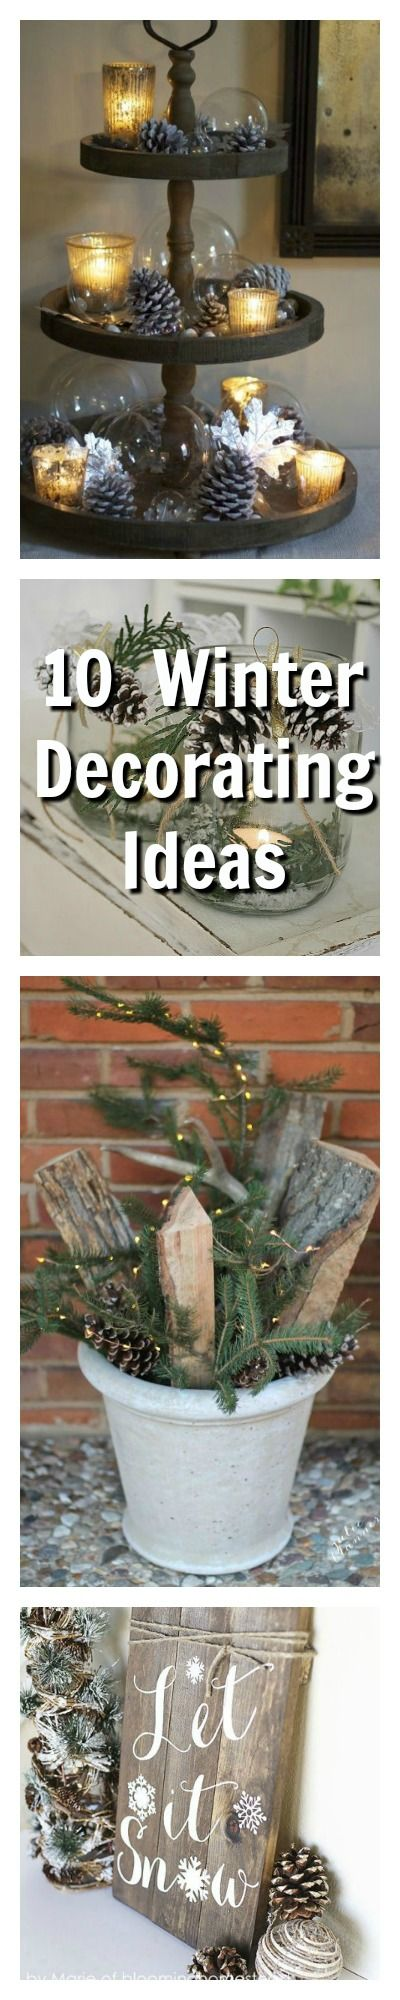 After Christmas, try out these DIY decorating ideas and crafts to cozy up your home all winter long.